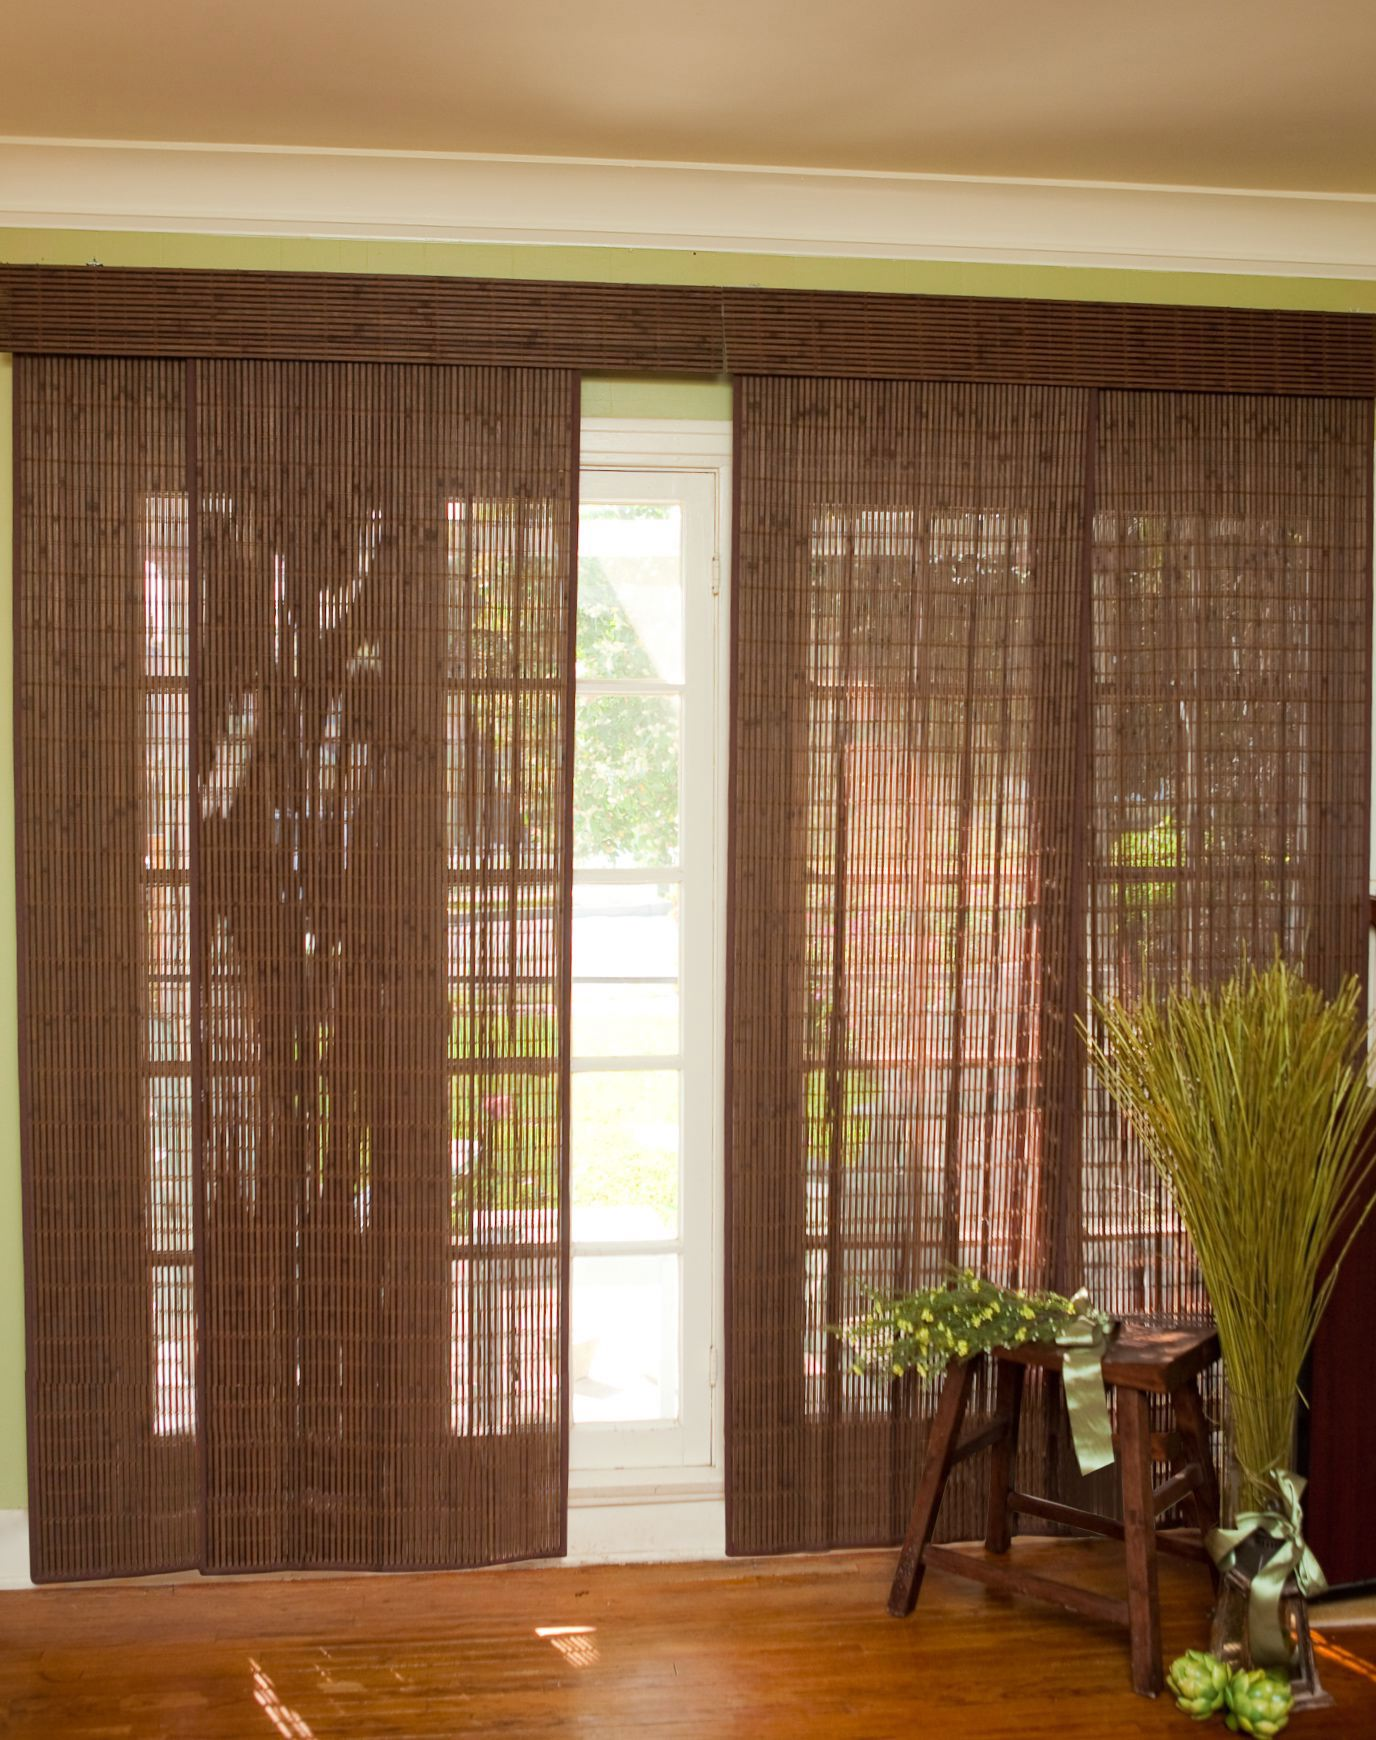 Vertical bamboo curtains - Bamboo Vertical Blinds